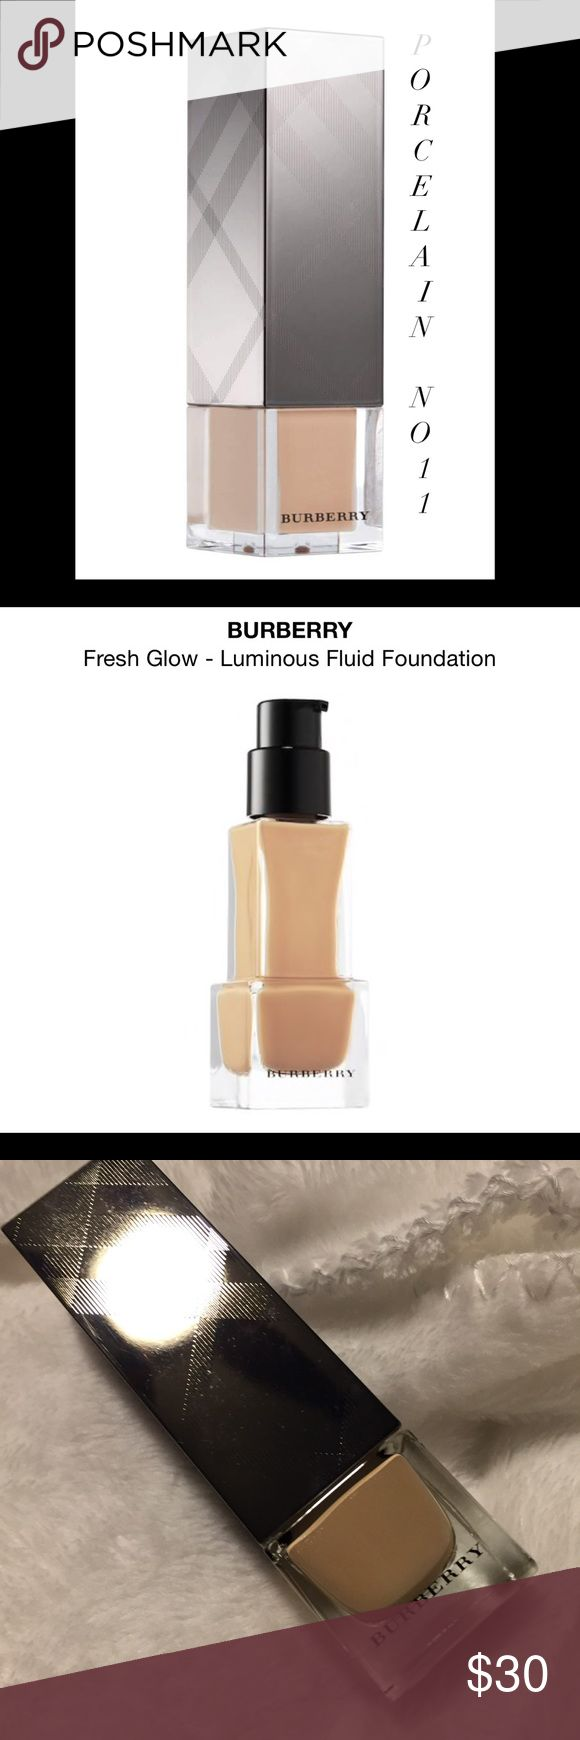 Burberry Fresh Glow Foundation ~ Porcelain #11 Burberry Fresh Glow Foundation ~ Shade is Porcelain #11 - Very Fair with Pink Undertones ~ Used Once/Still Full ~ Exp 11/2017 ~ Please Make Me An Offer On This ~ No Box Burberry Makeup Foundation